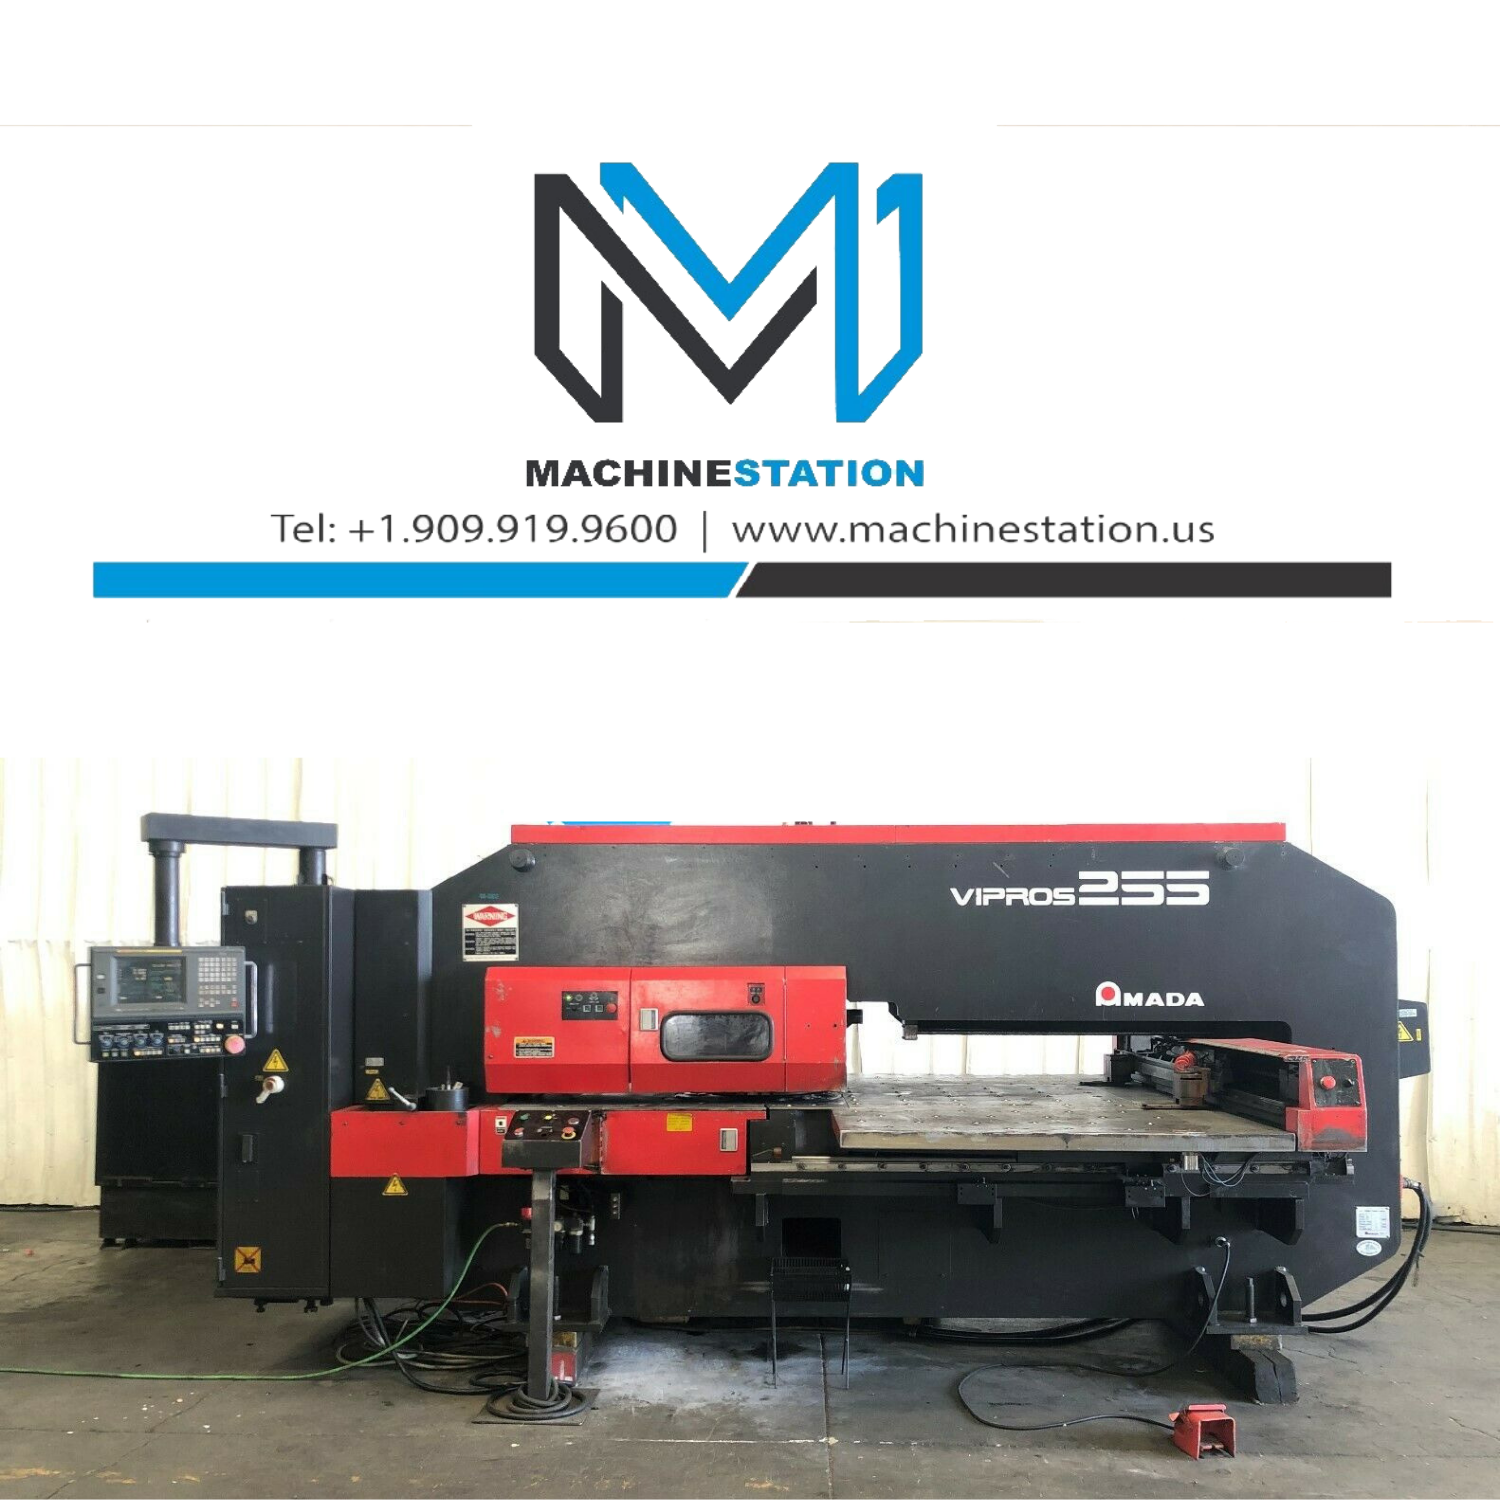 AMADA VIPROS 255 CNC TURRET PUNCH FOR SALE IN CALIFORNIA (10)